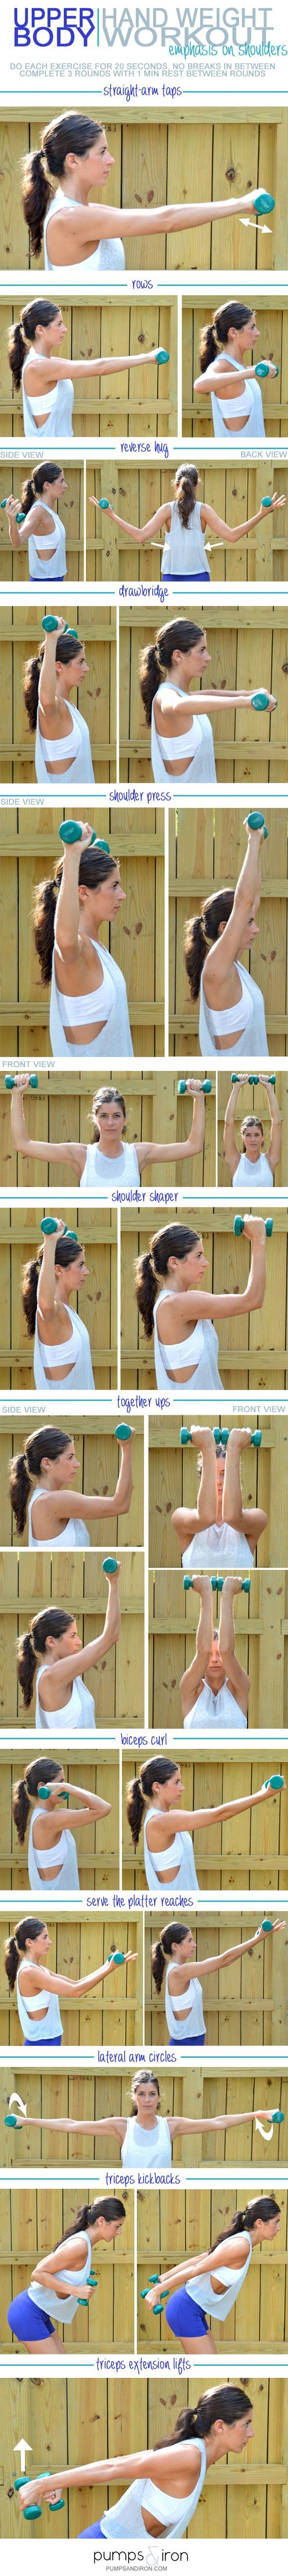 Upper-Body Hand Weight Workout (emphasis on shoulders)